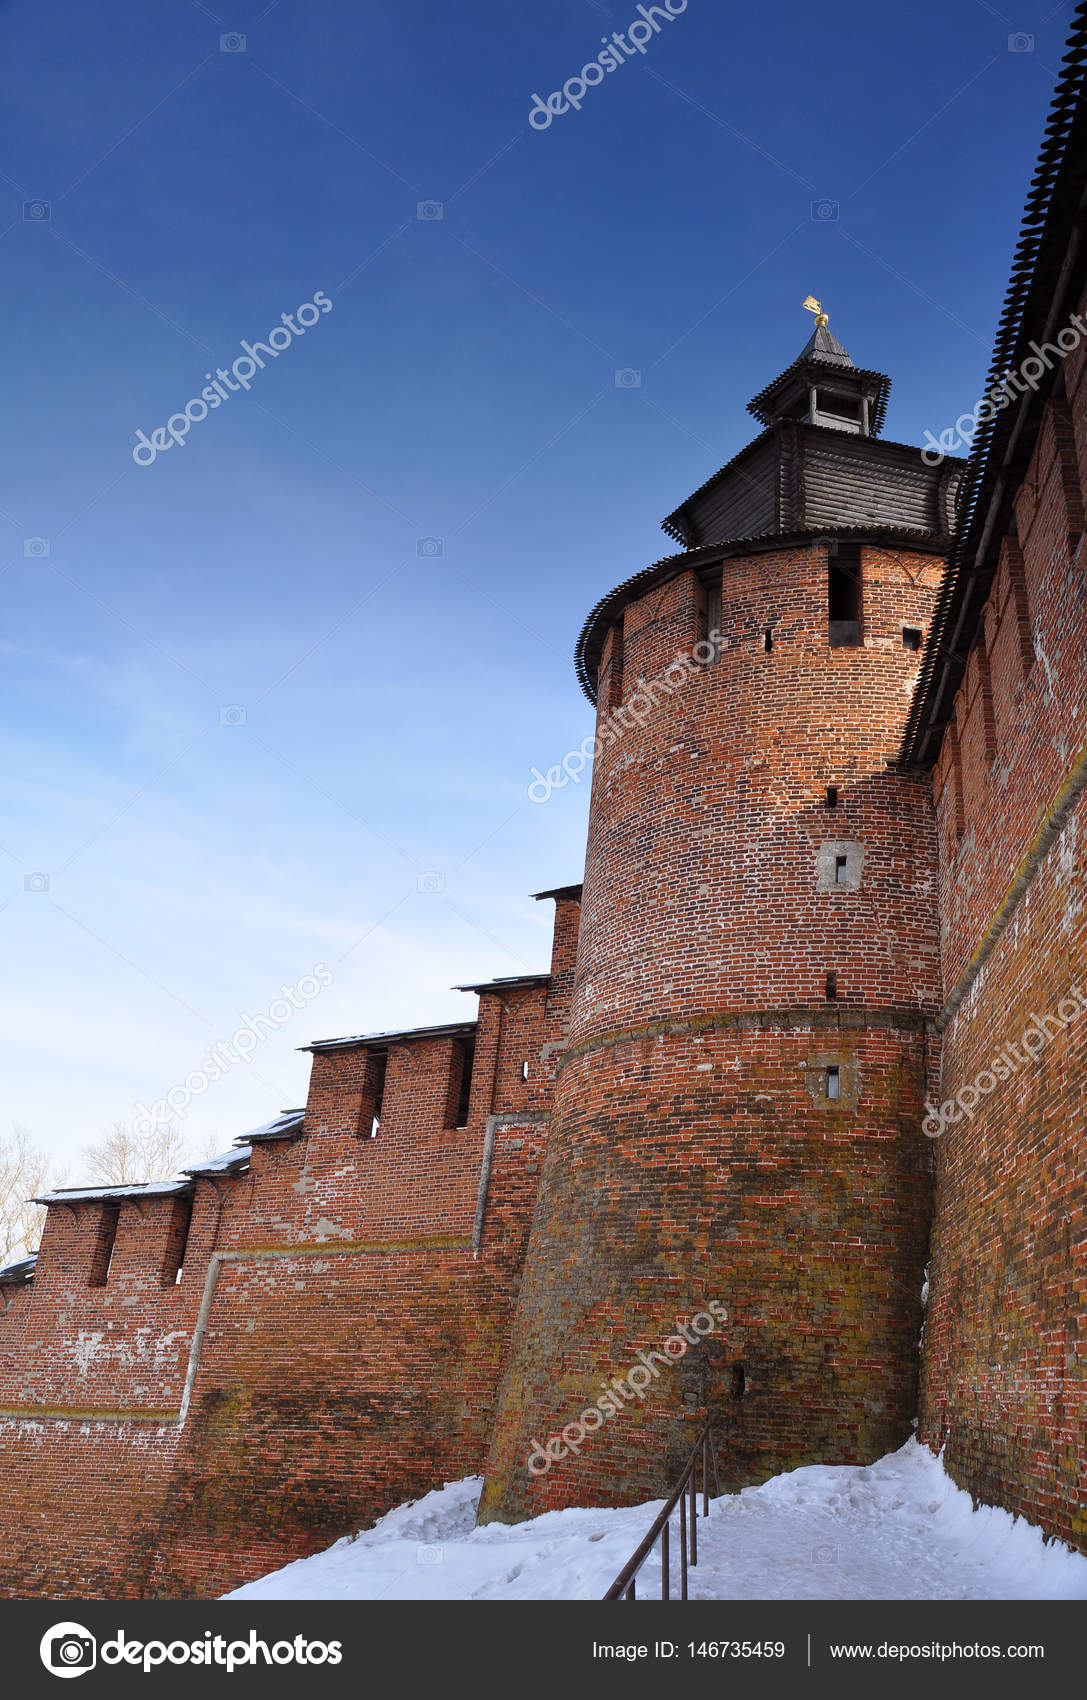 Nizhny Novgorod, Kremlin: history, sights and interesting facts 85